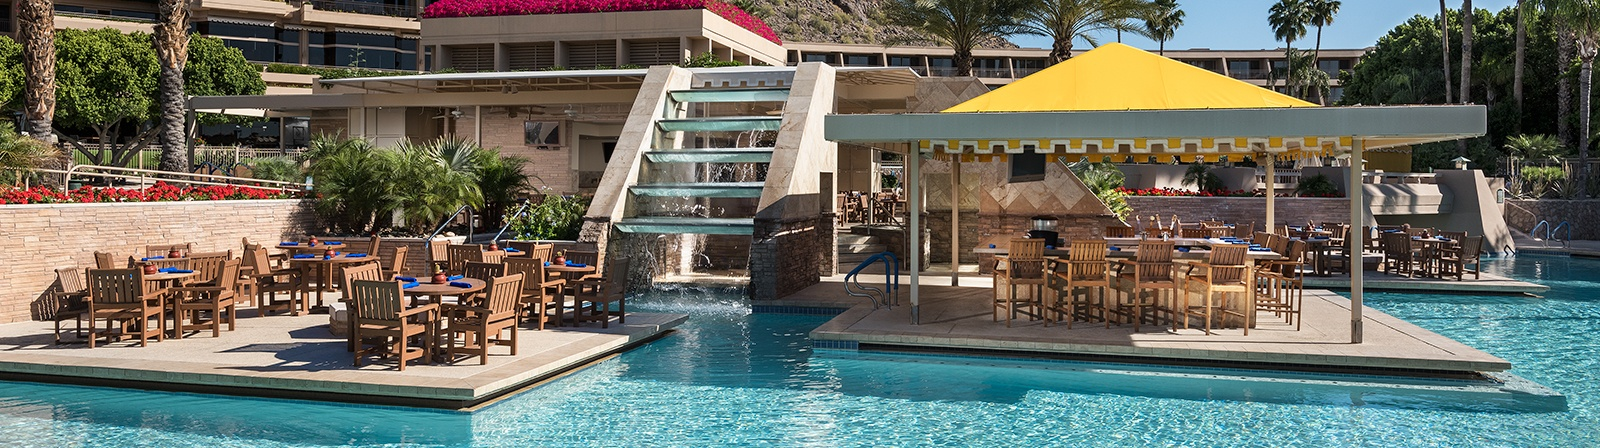 Phoenician_Oasis-Pool-Grill